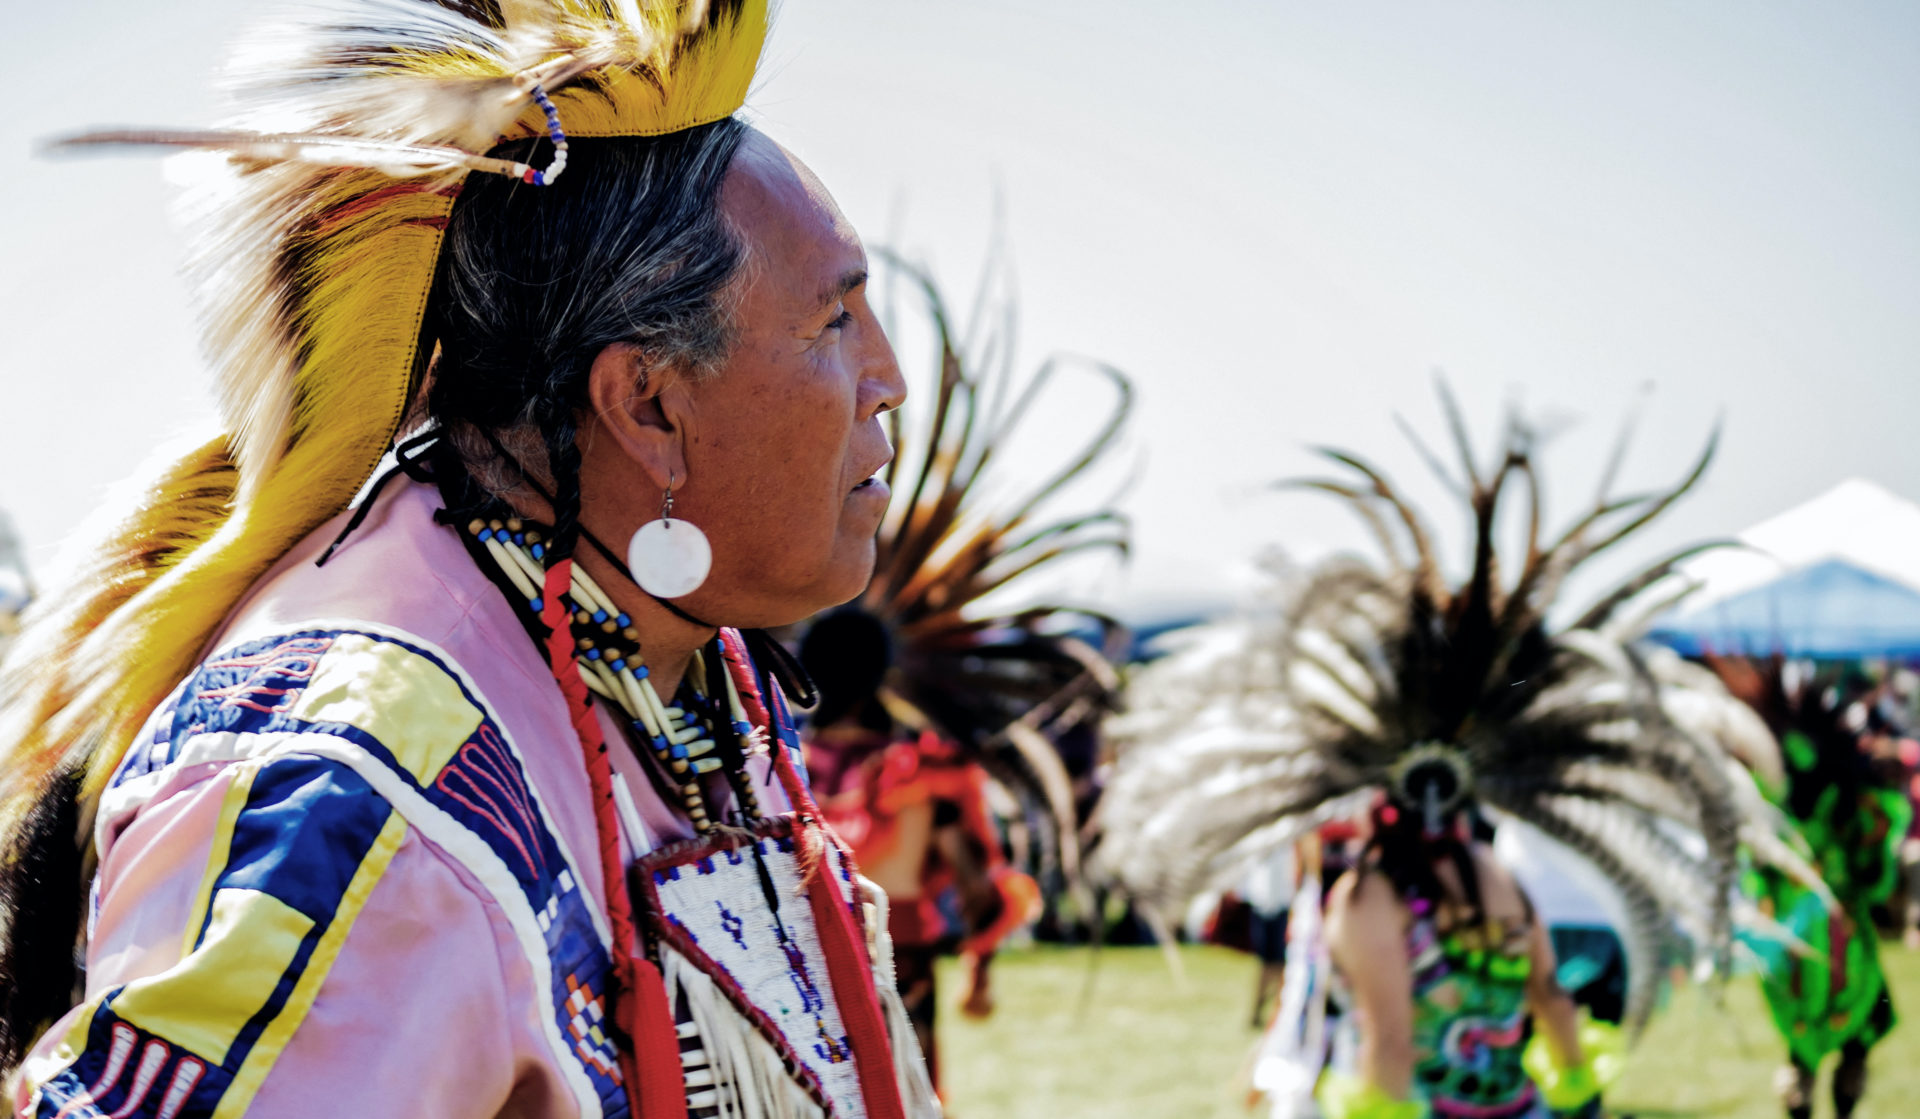 August 9 commemorates International Day of the World's Indigenous Peoples.